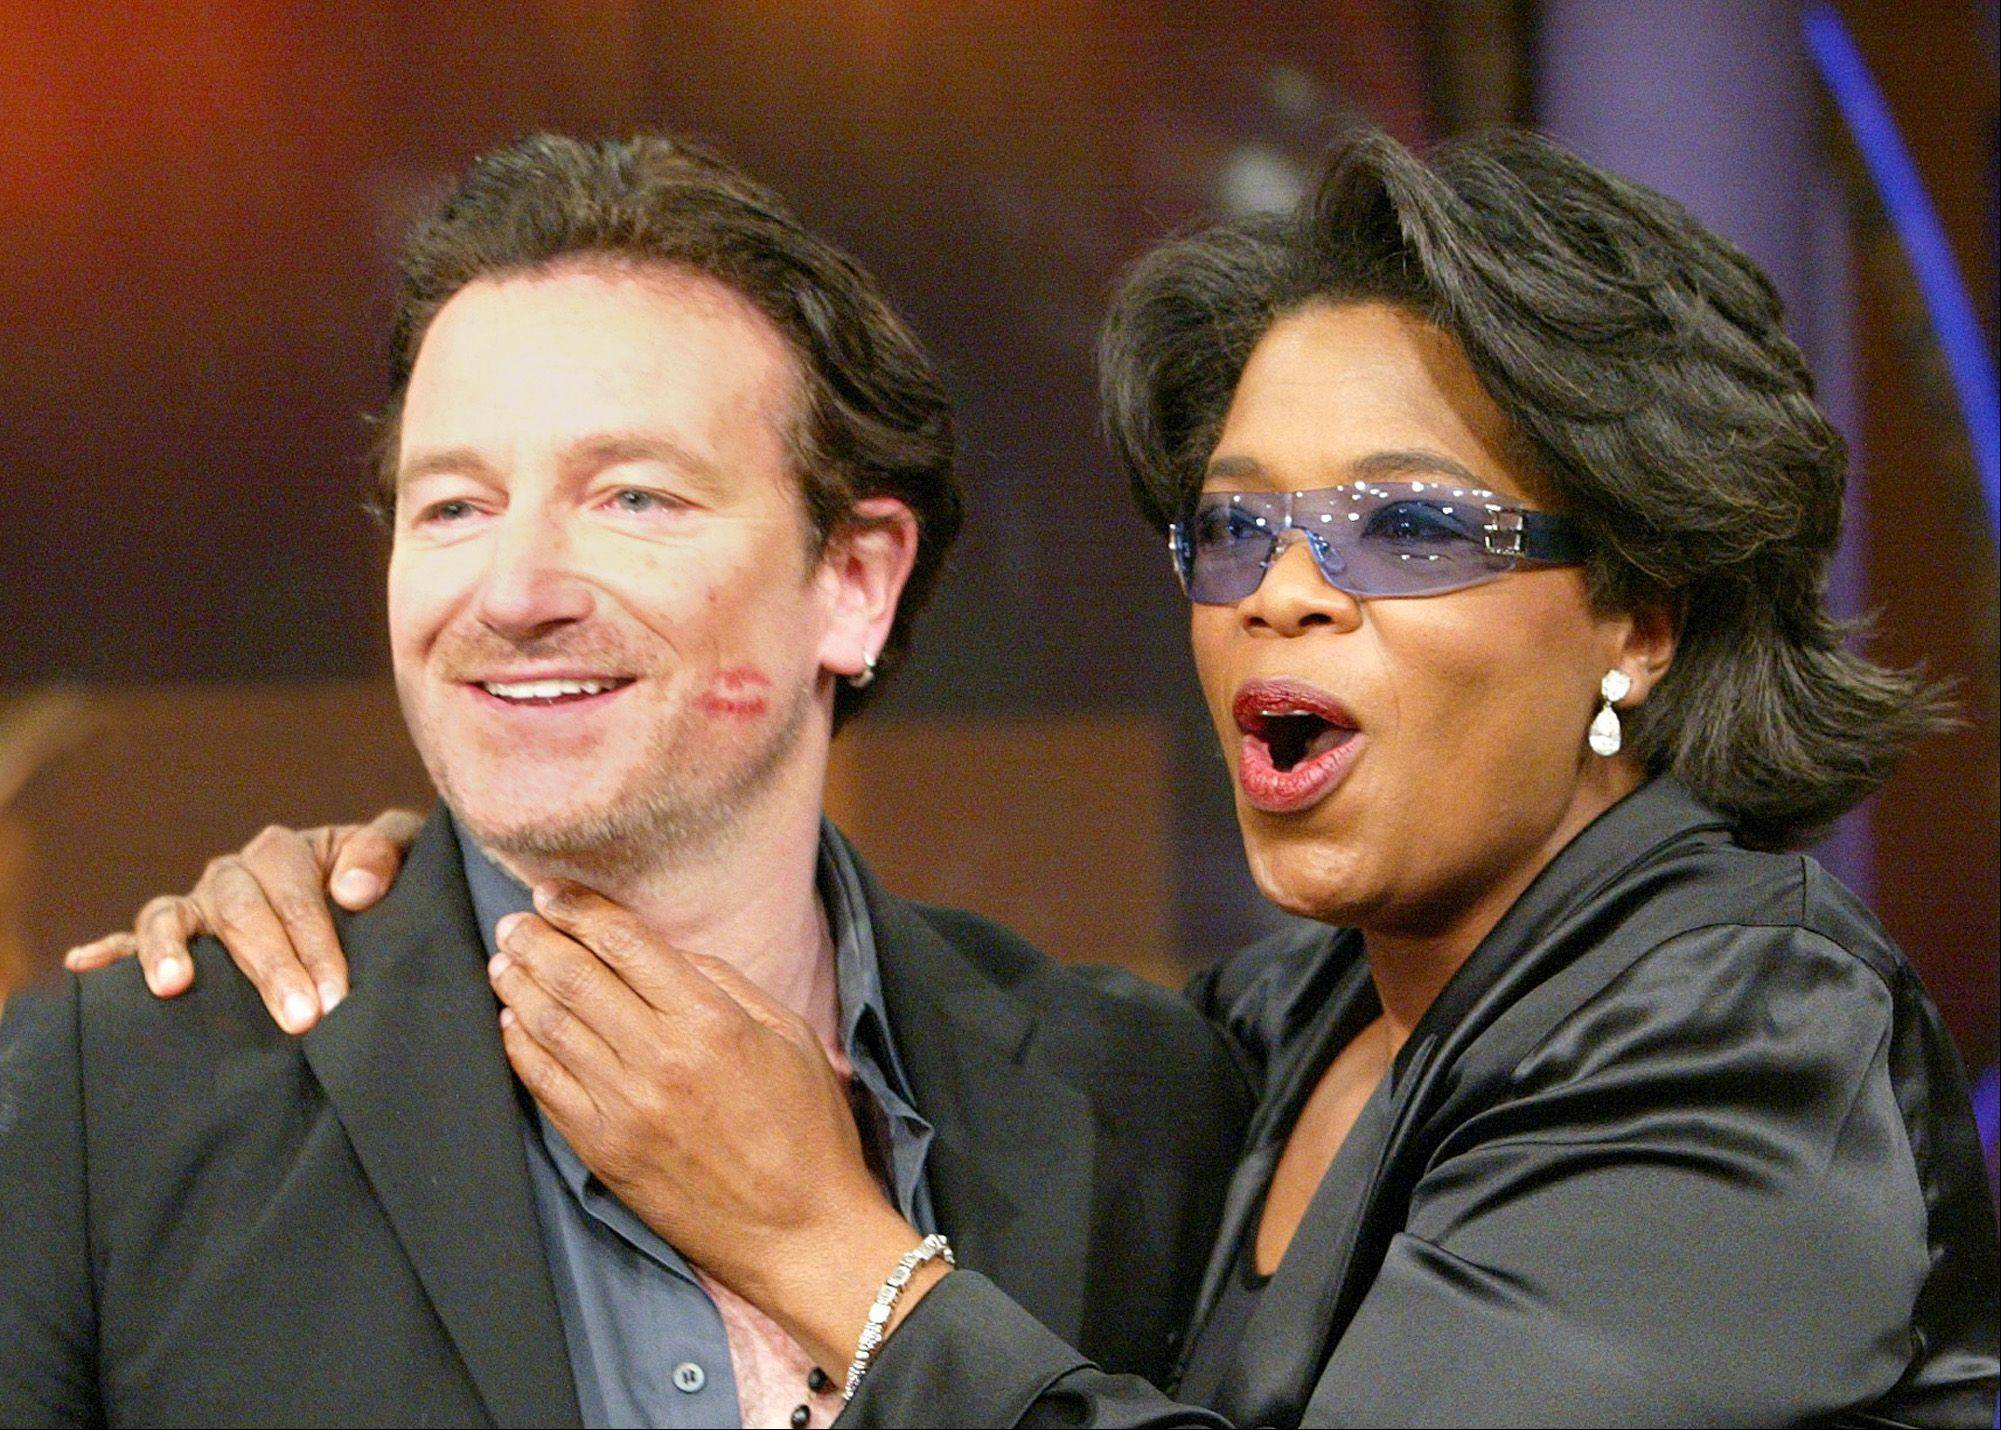 "Irish rock star Bono, left, sports lipstick from talk show host Oprah Winfrey during taping of ""The Oprah Winfrey Show"" Tuesday, Sept. 17, 2002, in Chicago. The two talked about their mutual concerns about issues confronting Africa. Earlier this year Bono took a 10-day tour of sub-Saharan Africa. The show is scheduled to air Friday."